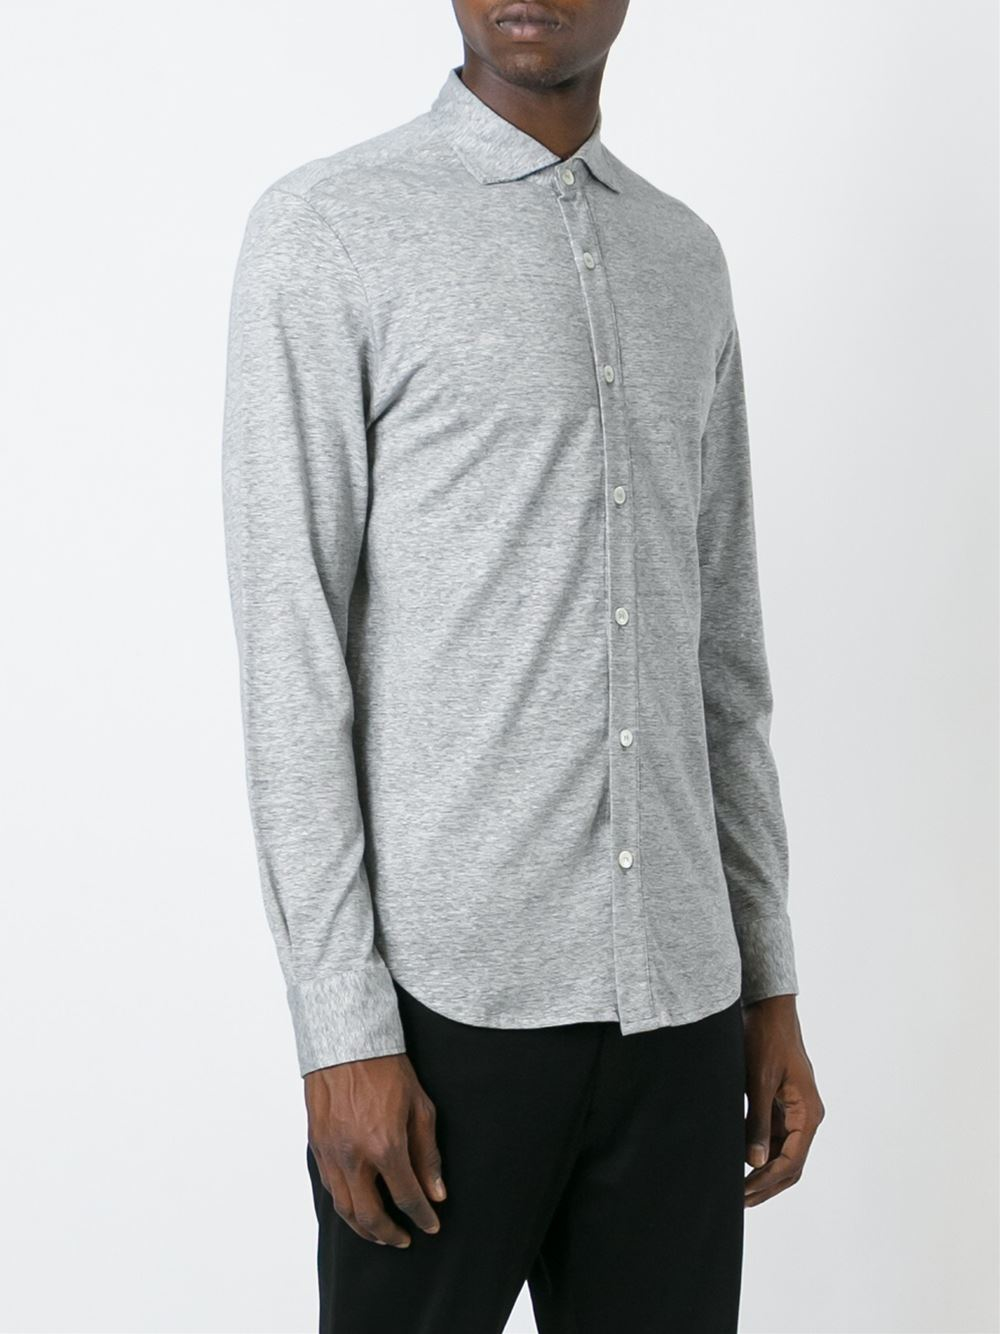 Lyst eleventy button down shirt in gray for men for Grey button down shirt